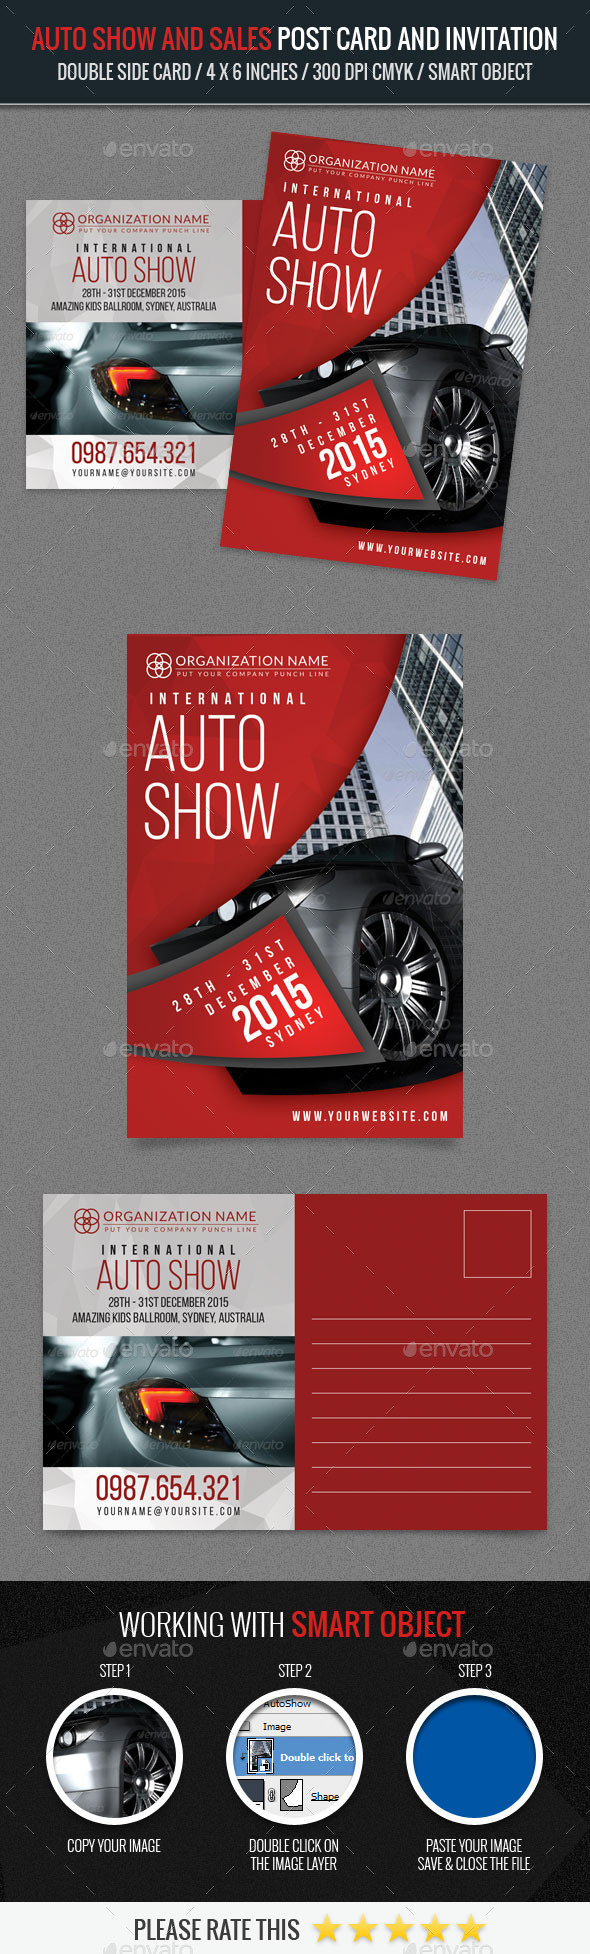 Auto Show and Sales Post Card Template